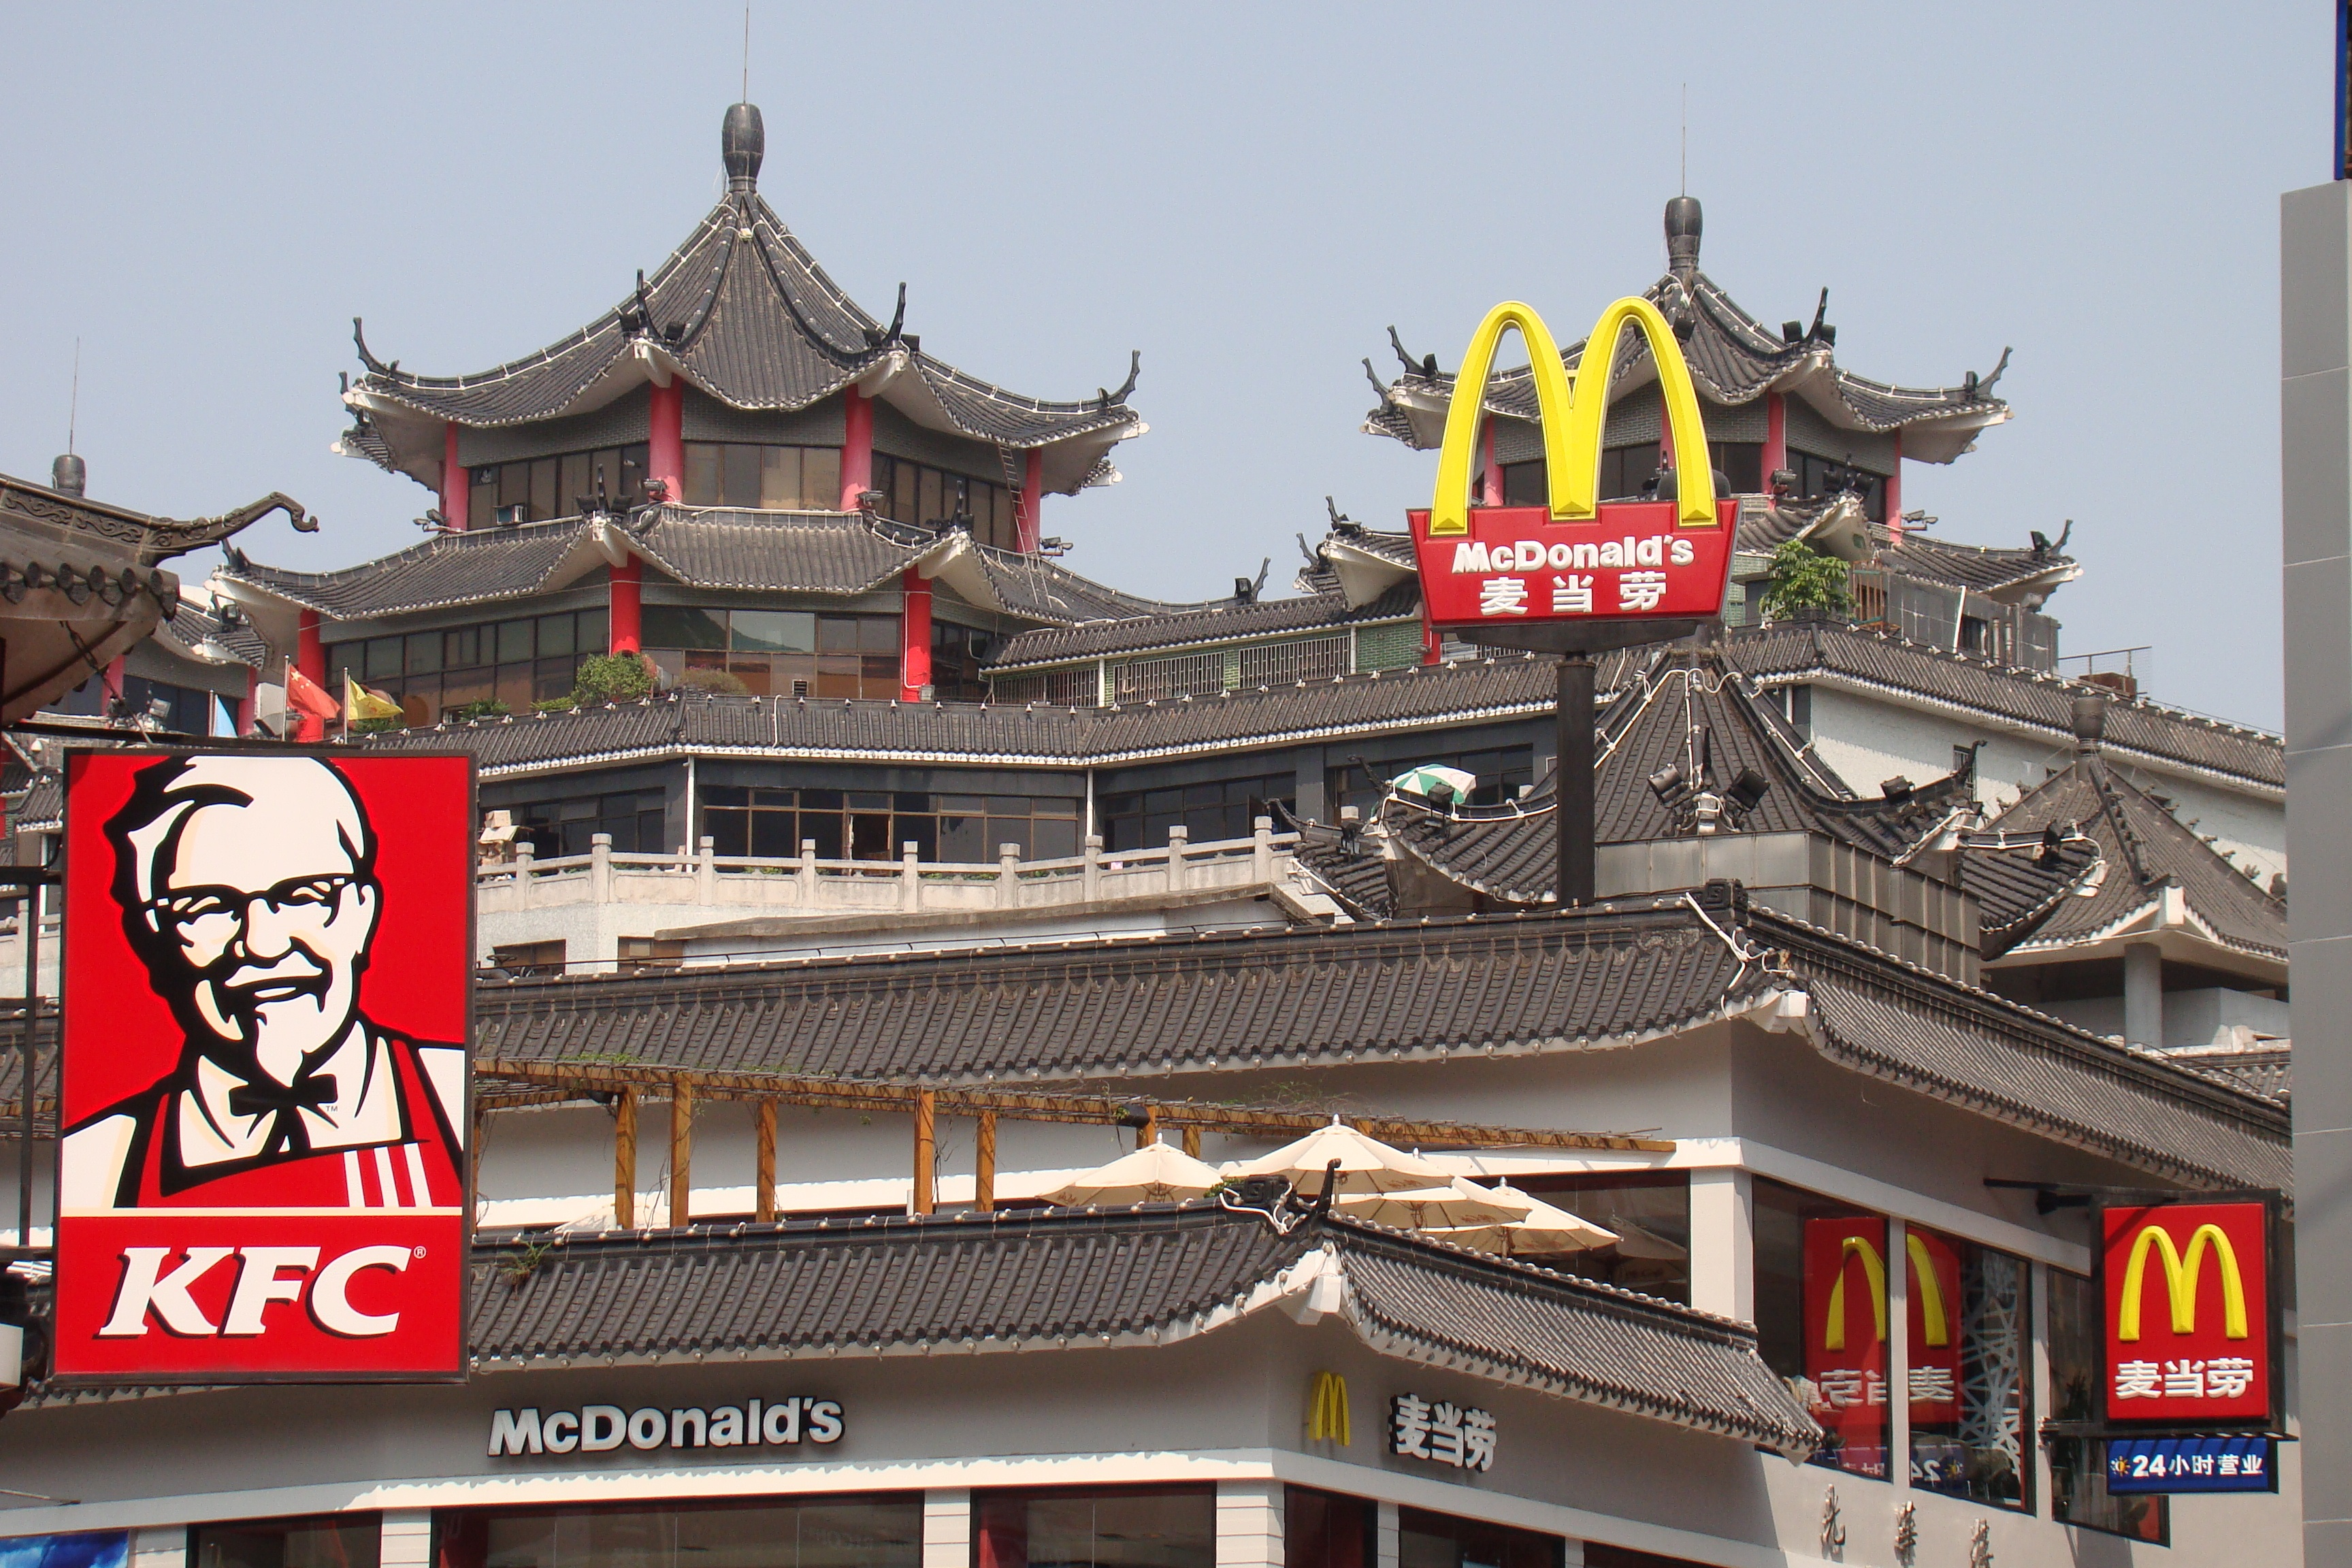 mcdonalds in china 2016-3-31  mcdonald's is apparently unfazed by the recent problems it's faced in china the company said on thursday that in the next five years it plans to add about 1,500 restaurants in china, hong kong, and south korea—up from its current count of 2,800—including more than 1,000 in china alone.